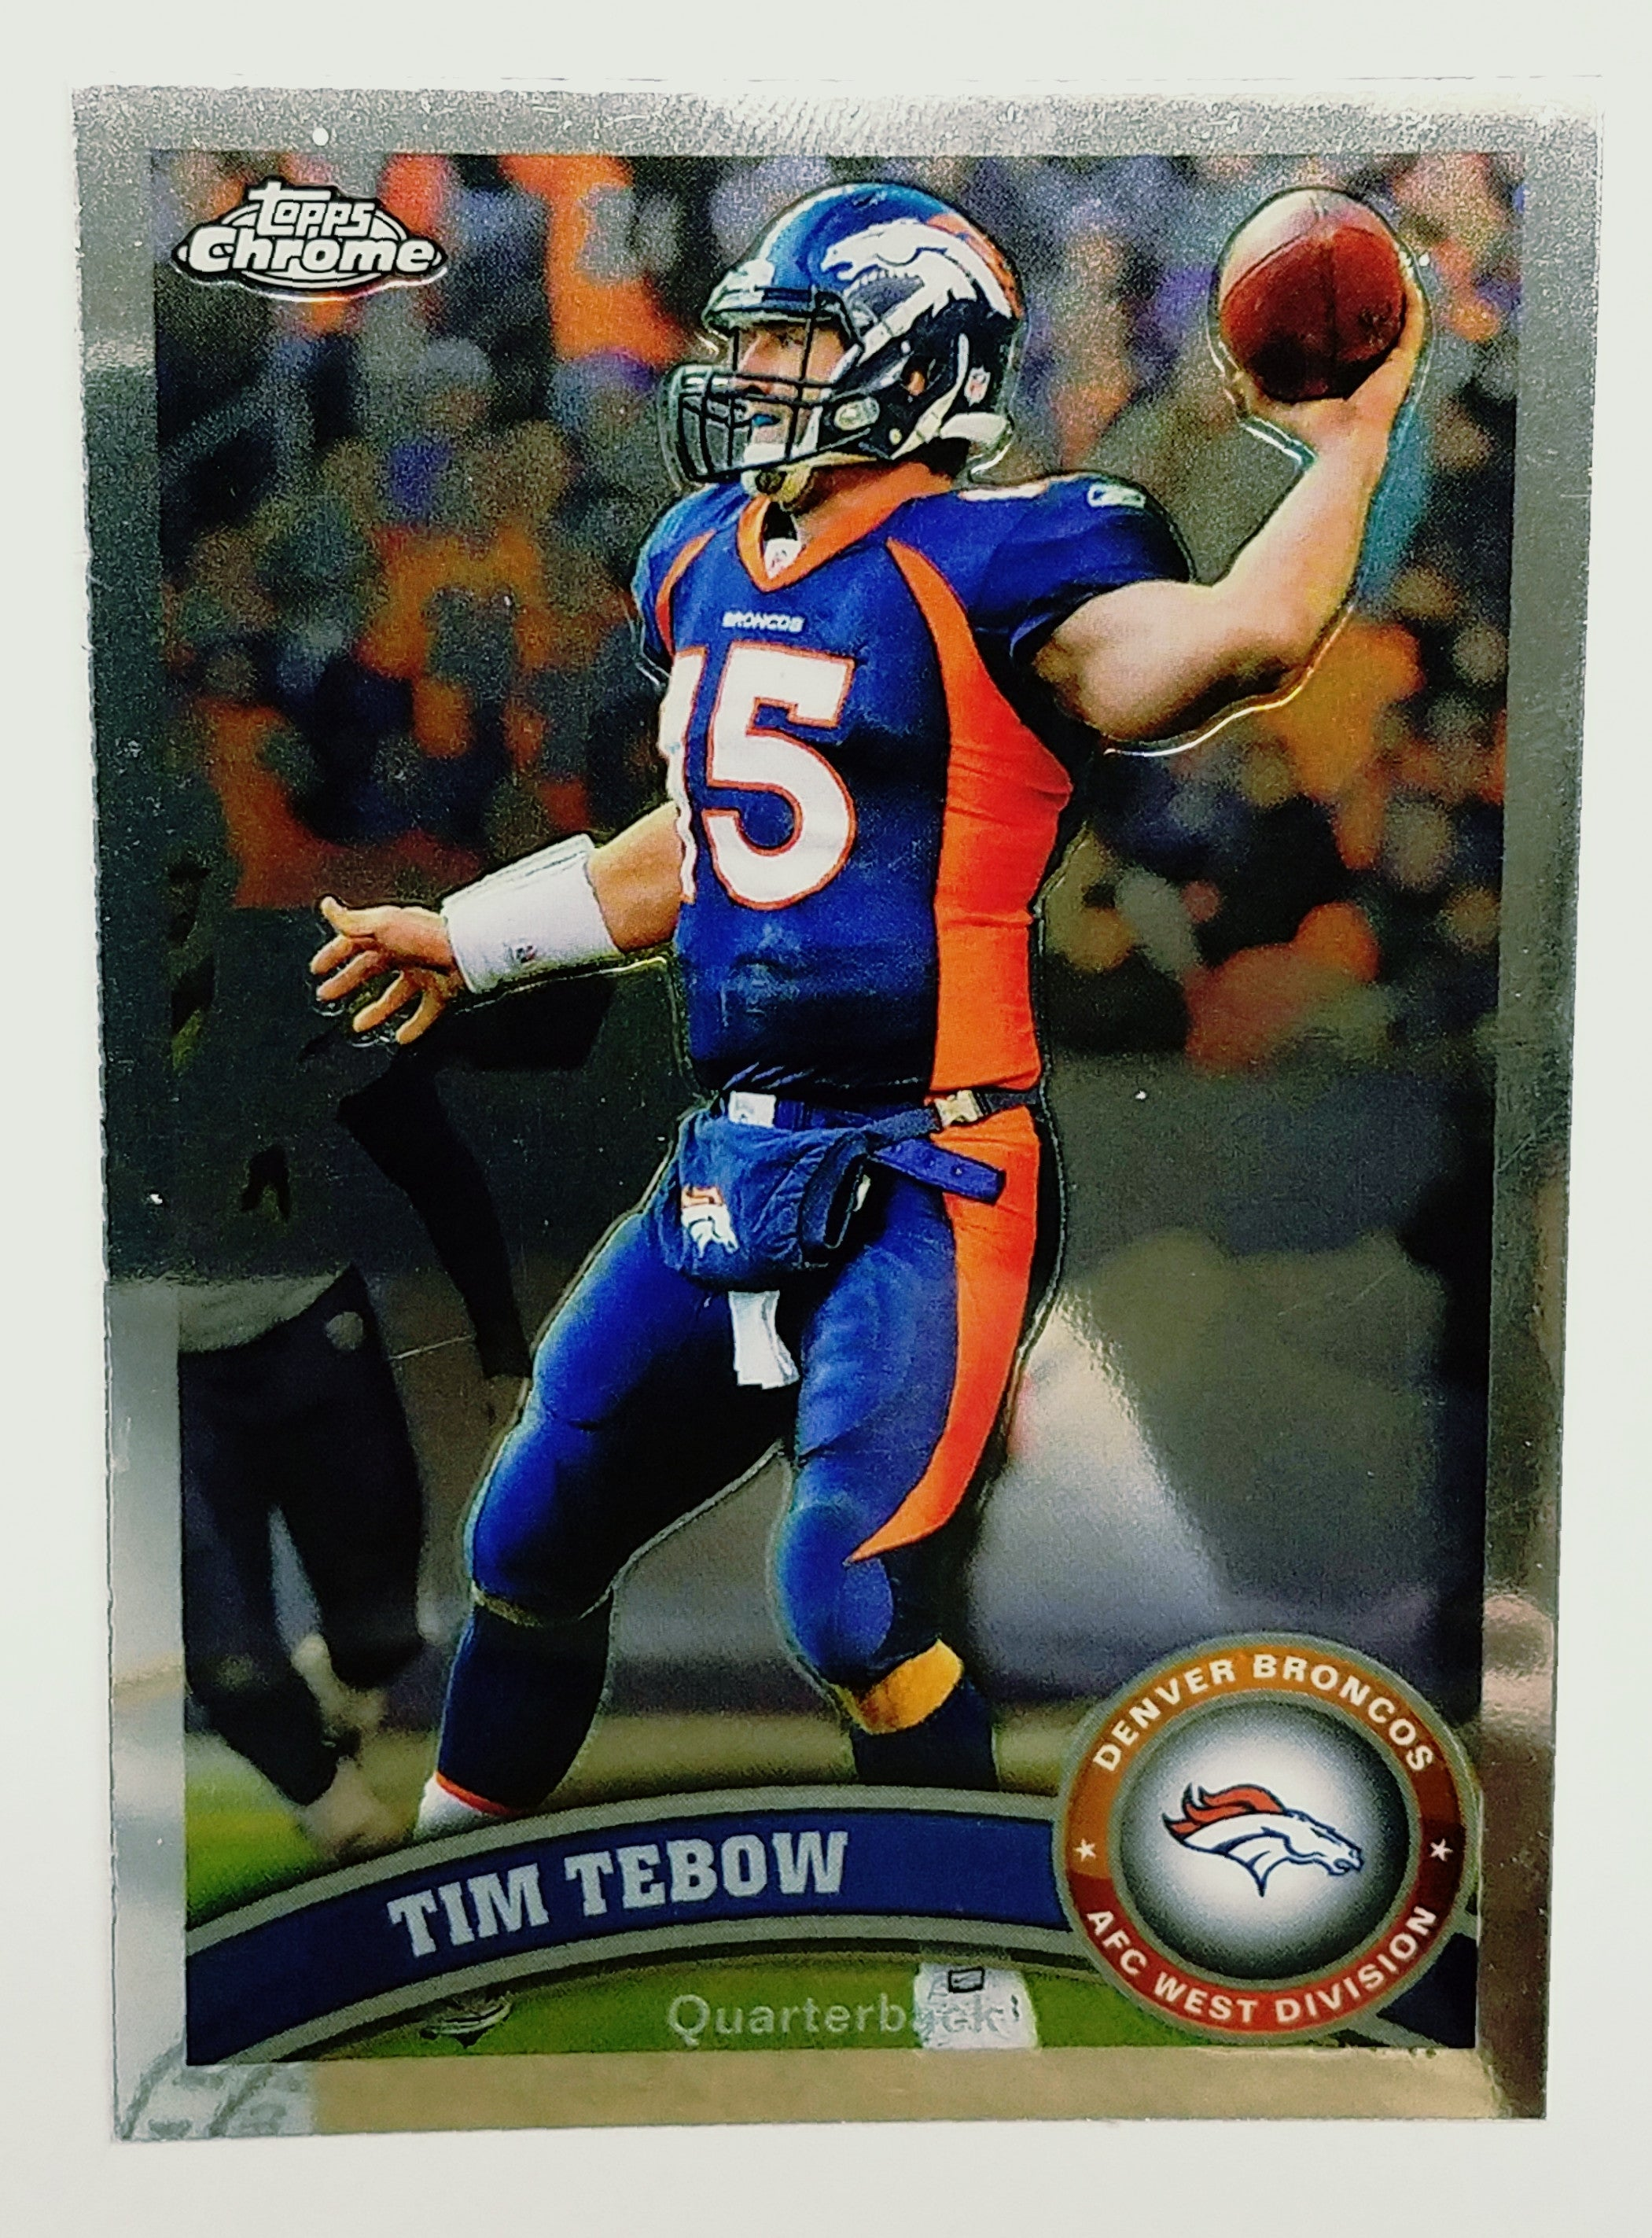 Tim Tebow, Denver, Broncos, Topps, Chrome, Quarterback, Mets